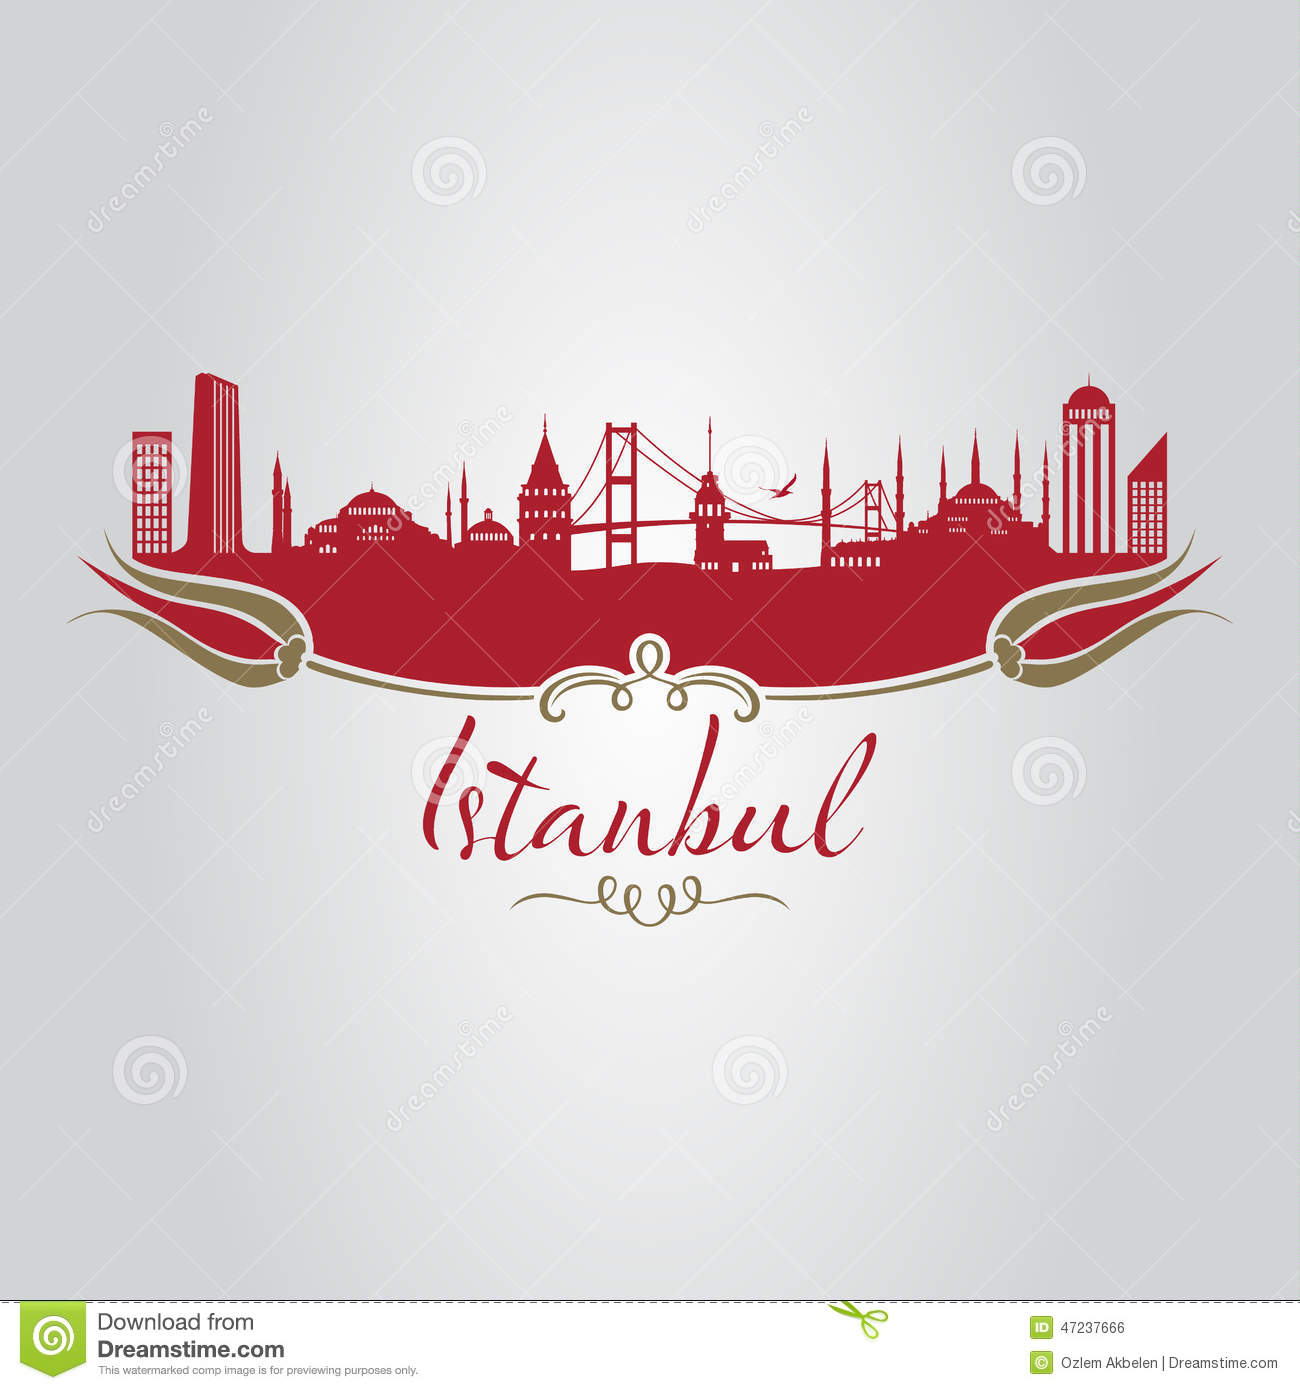 Traditional istanbul silhouette with istanbul type and tulip.